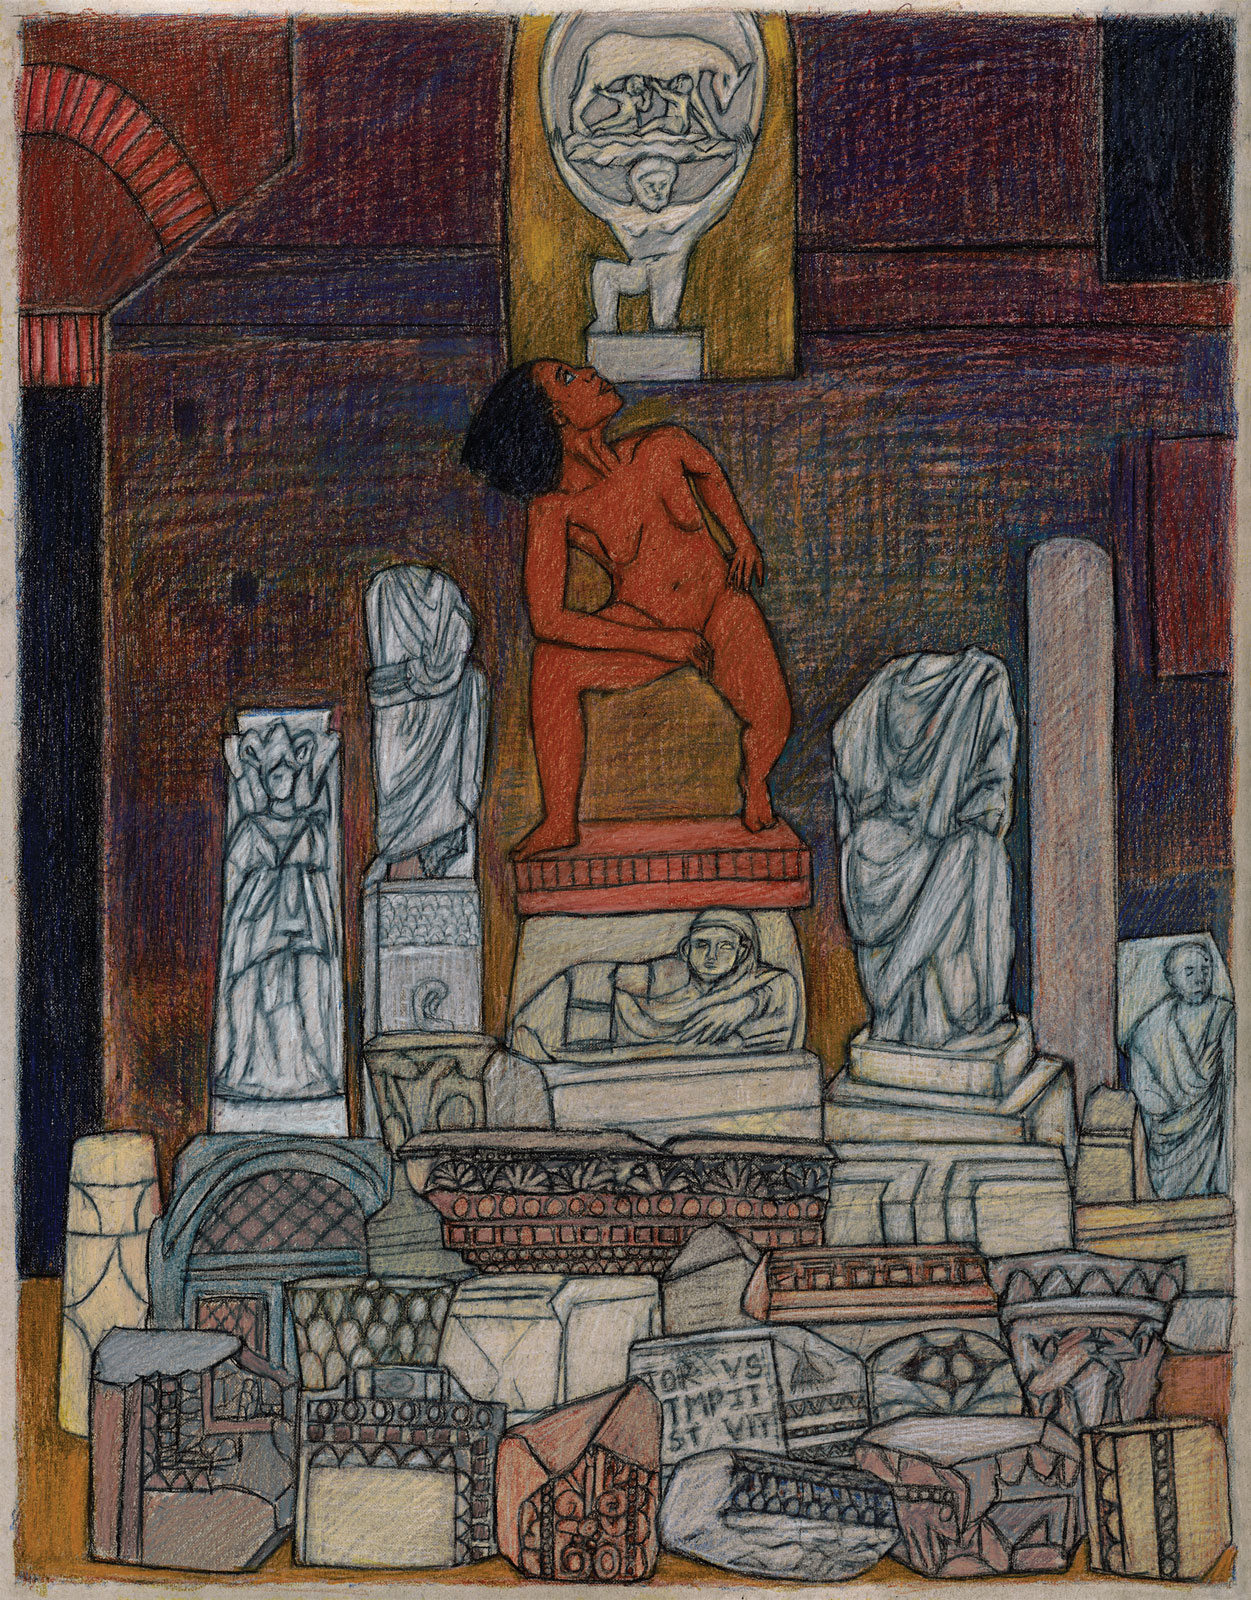 <i>The Italy Drawings: Statues</i> (2014), 22˝ × 17˝, colored pencil on paper